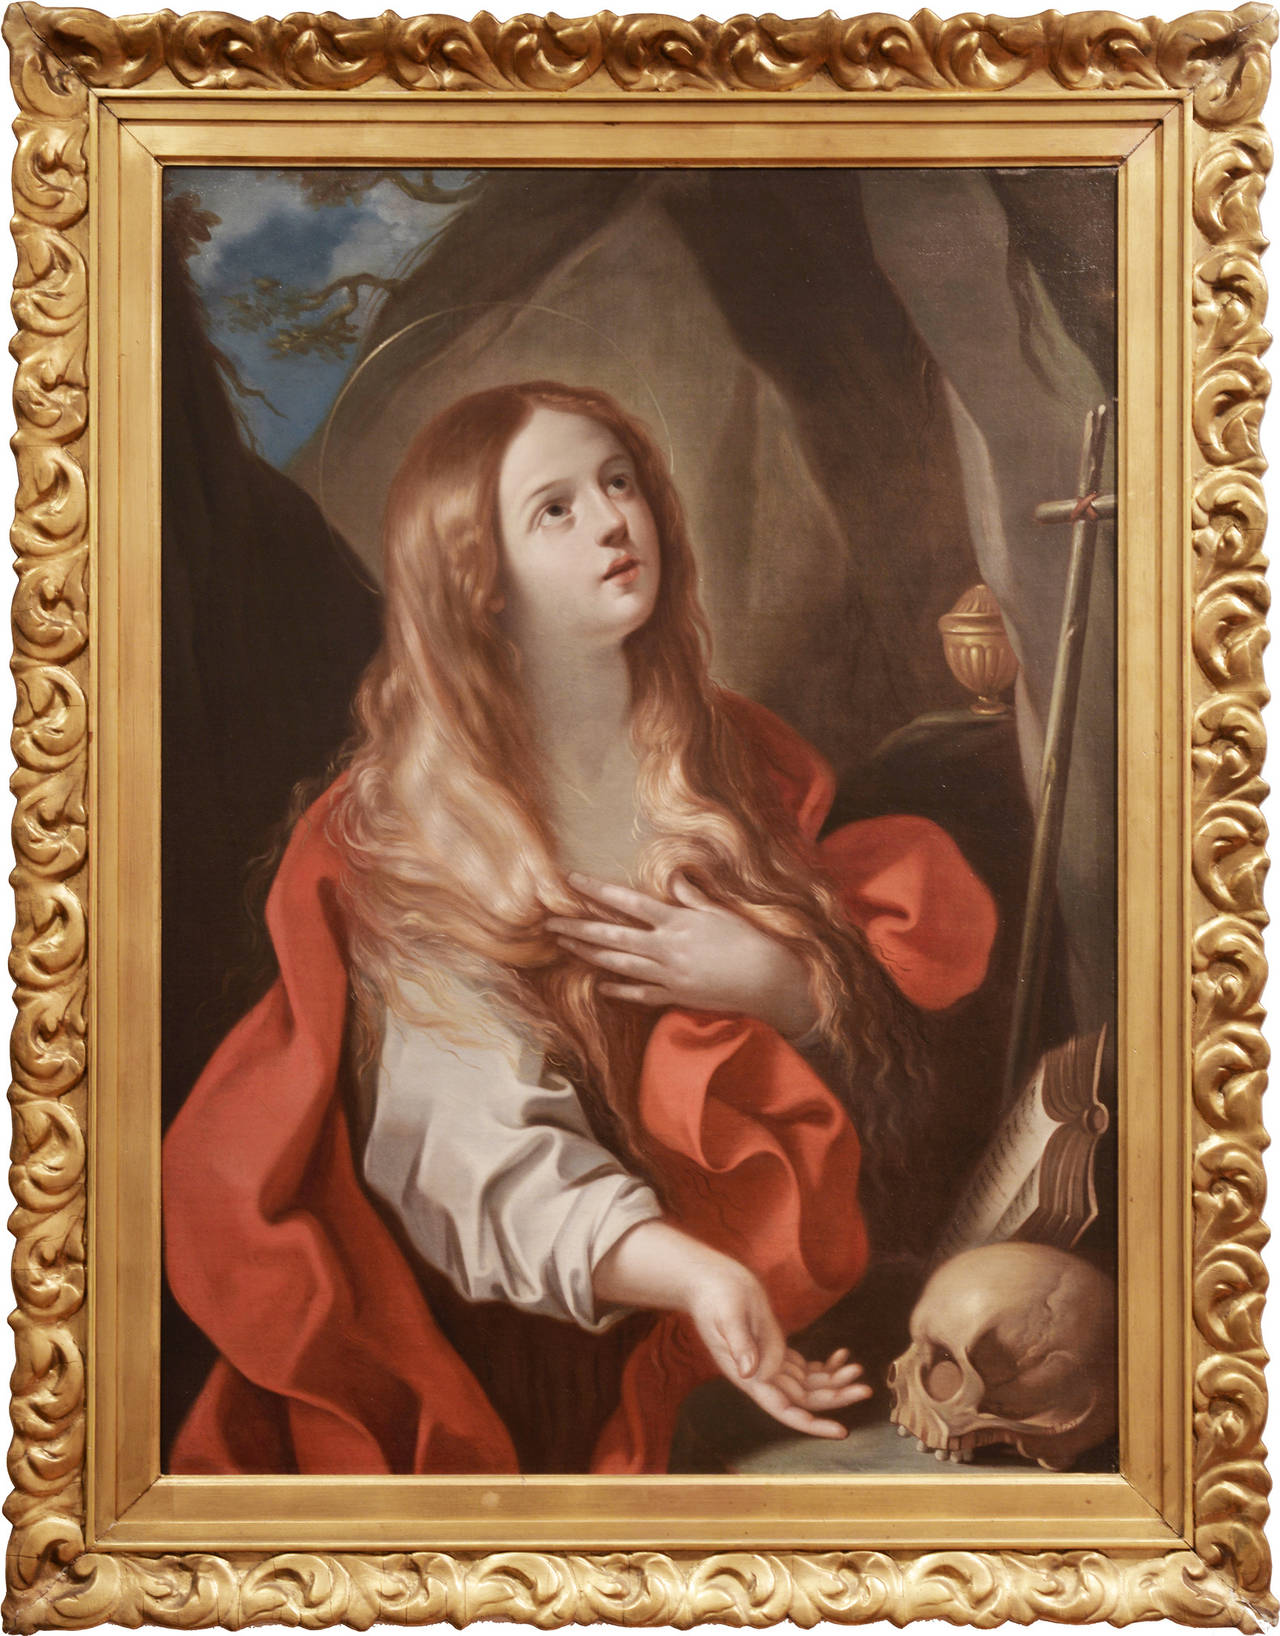 This oil painting by Bolognese, Italy painter Francesco Gessi is remarkable for its tenderly depicted subject and dramatic usage of chiaroscuro. The painter attains an almost etheral simplification of the human figure, shaping the folds of Mary's